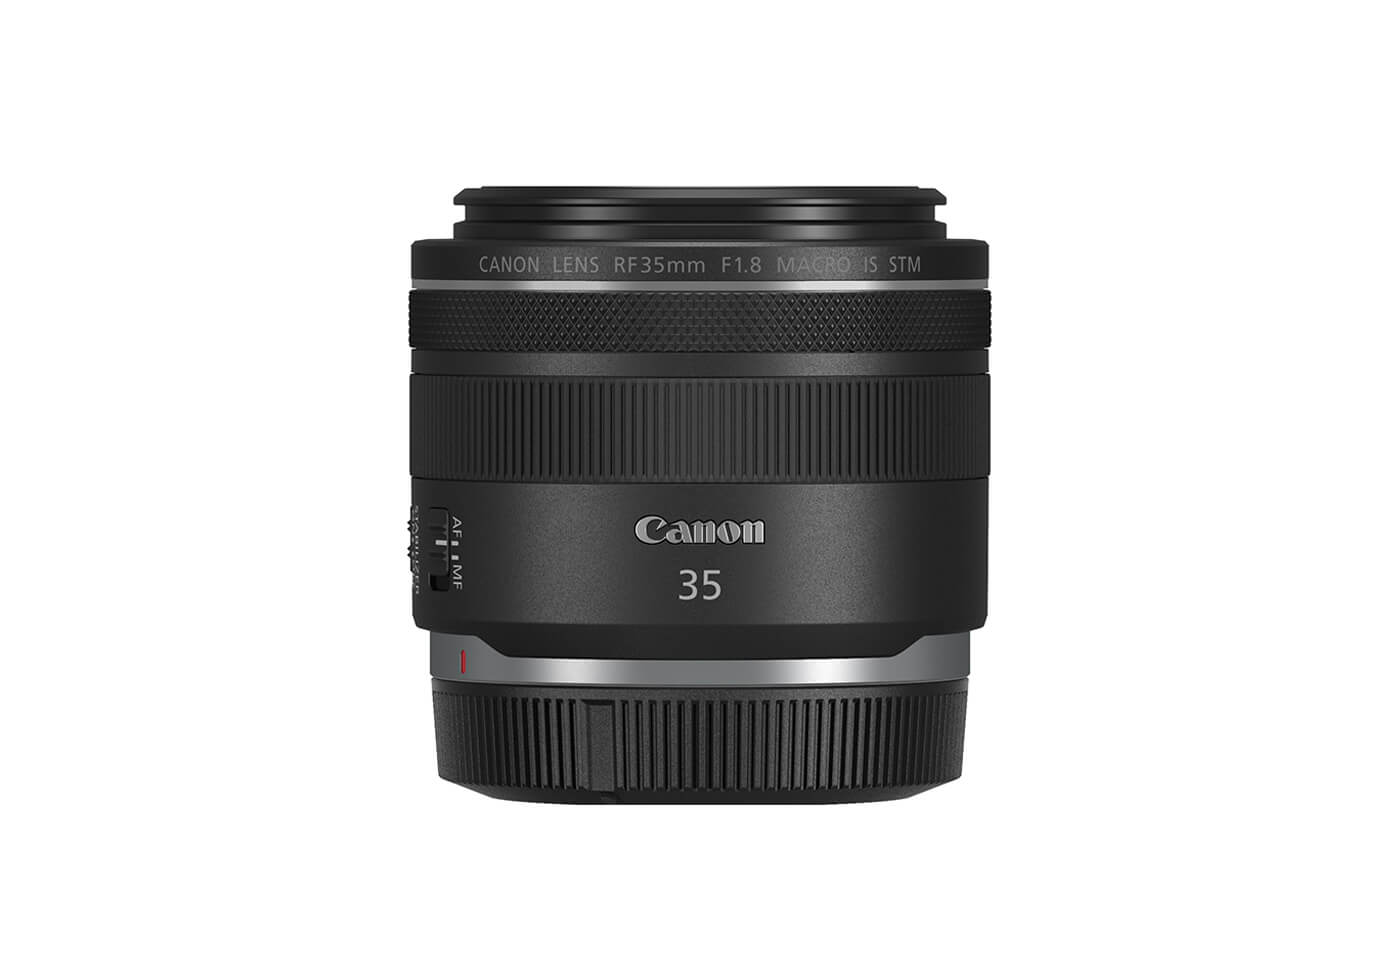 Image of RF 35mm f/1.8 Macro IS STM with cap